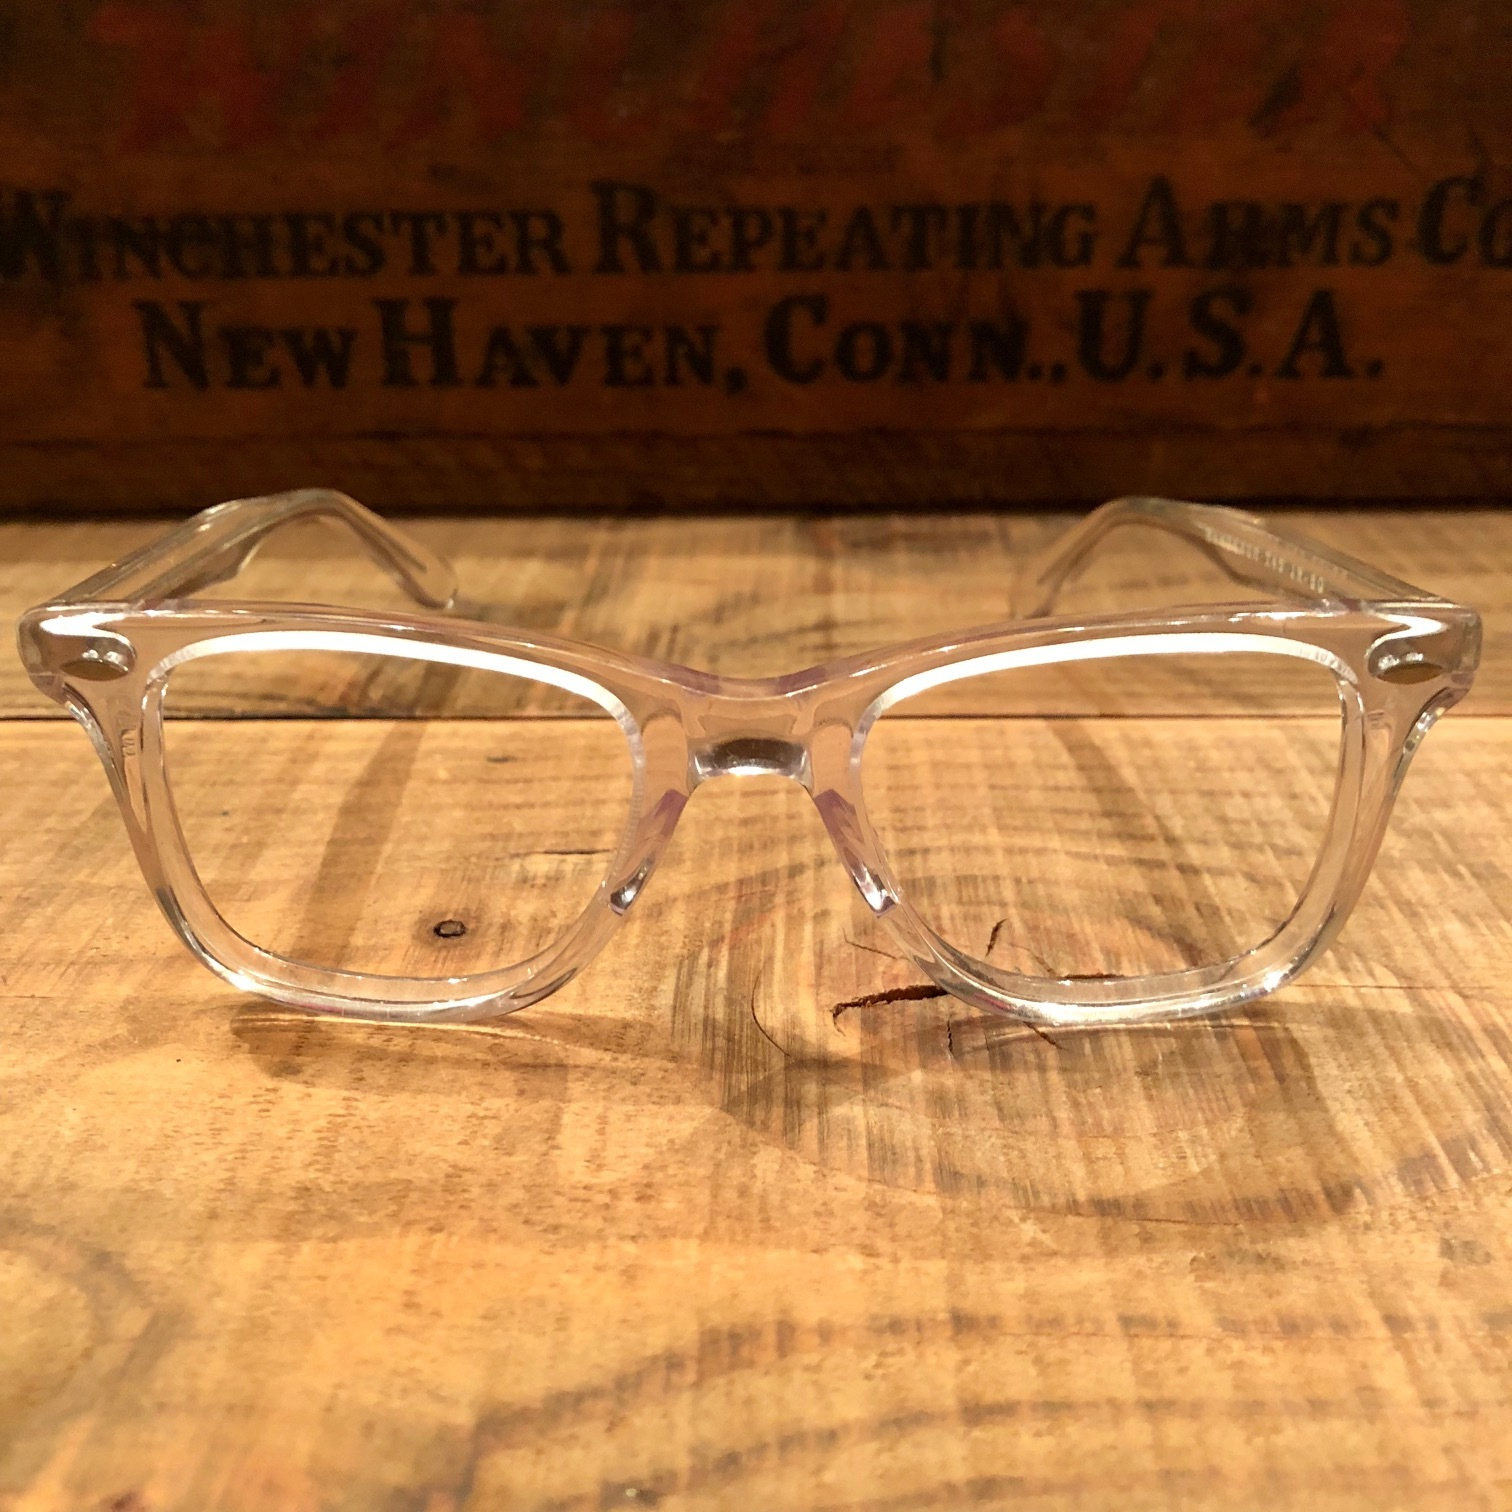 "1950-60s "" VICTORY optical \"" - VINTAGE - wellington CLEAR CELL FRAME - mintconditions - ._d0172088_22122401.jpg"